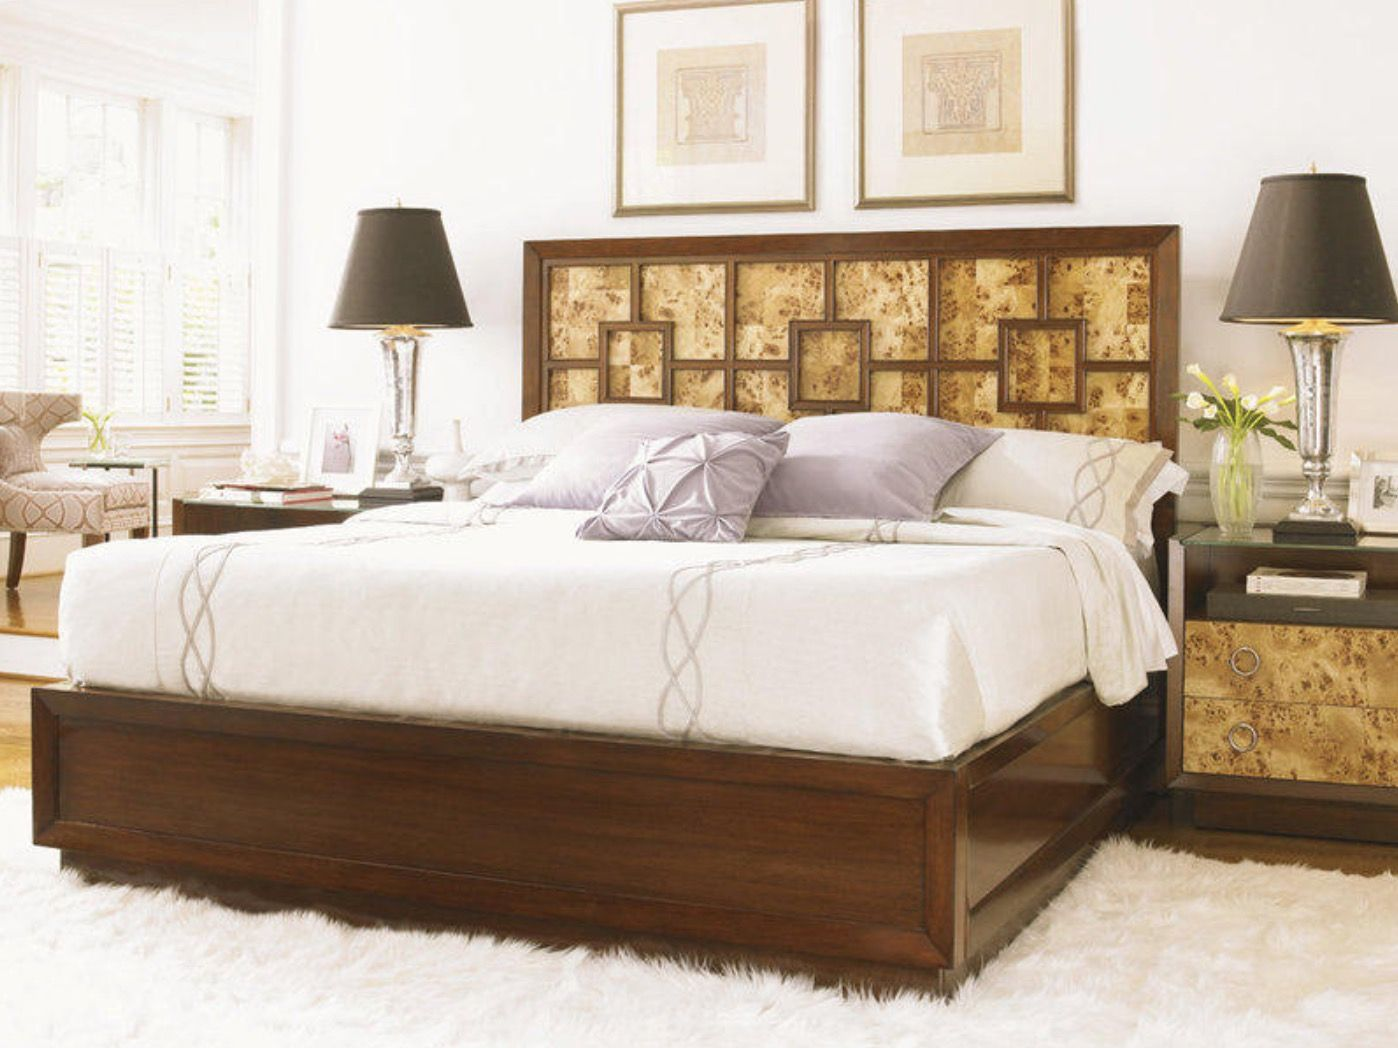 The Harlow King Panel Bedroom Collection Bedroom sets